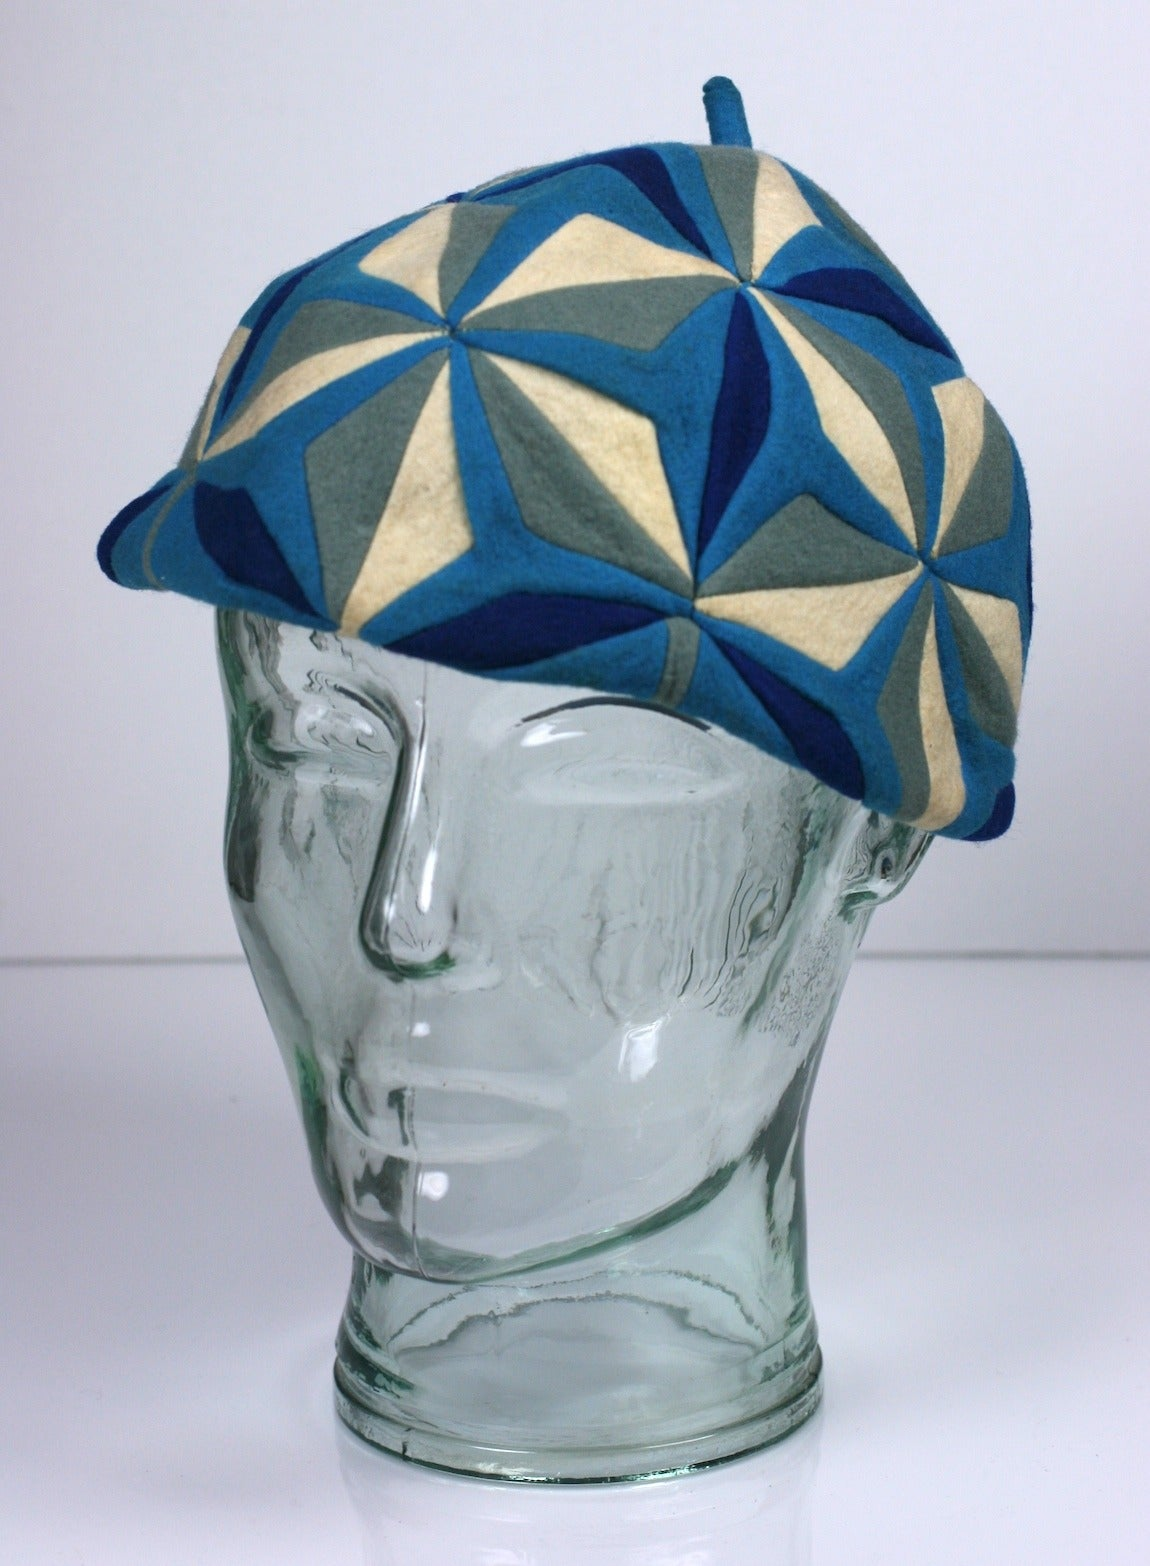 The Italian doll company Lenci occasionally made small fashion accessories such as this beret from the 1930's. This elaborate hand pieced patterning is highly evocative of Cubism and the Art Deco era in shades of blues, grays and white wool felt.